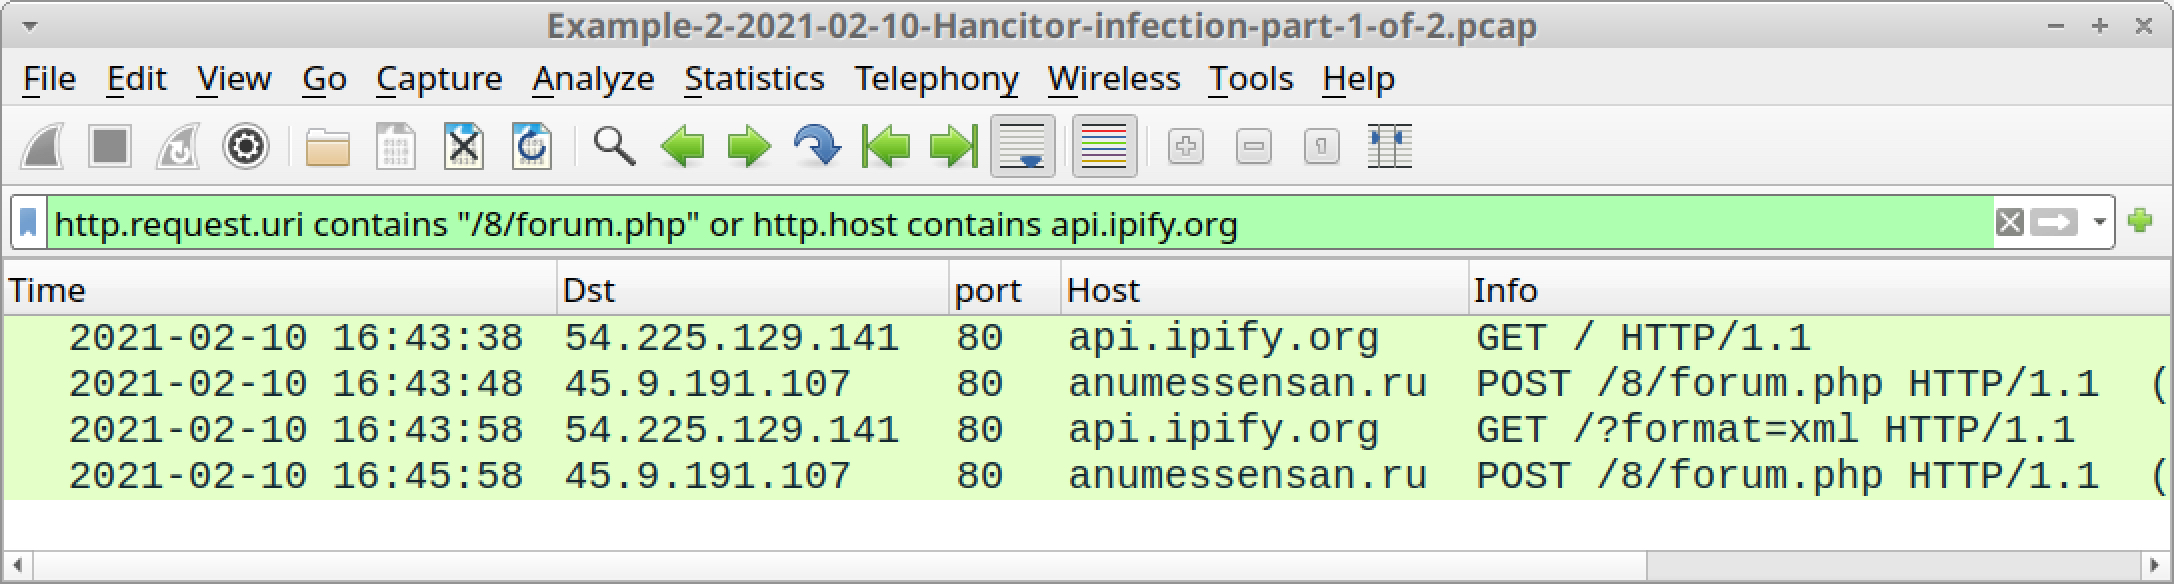 The screenshot shows the results of filtering for IP address checks by Hancitor and Ficker Stealer, along with Hancitor C2 traffic.